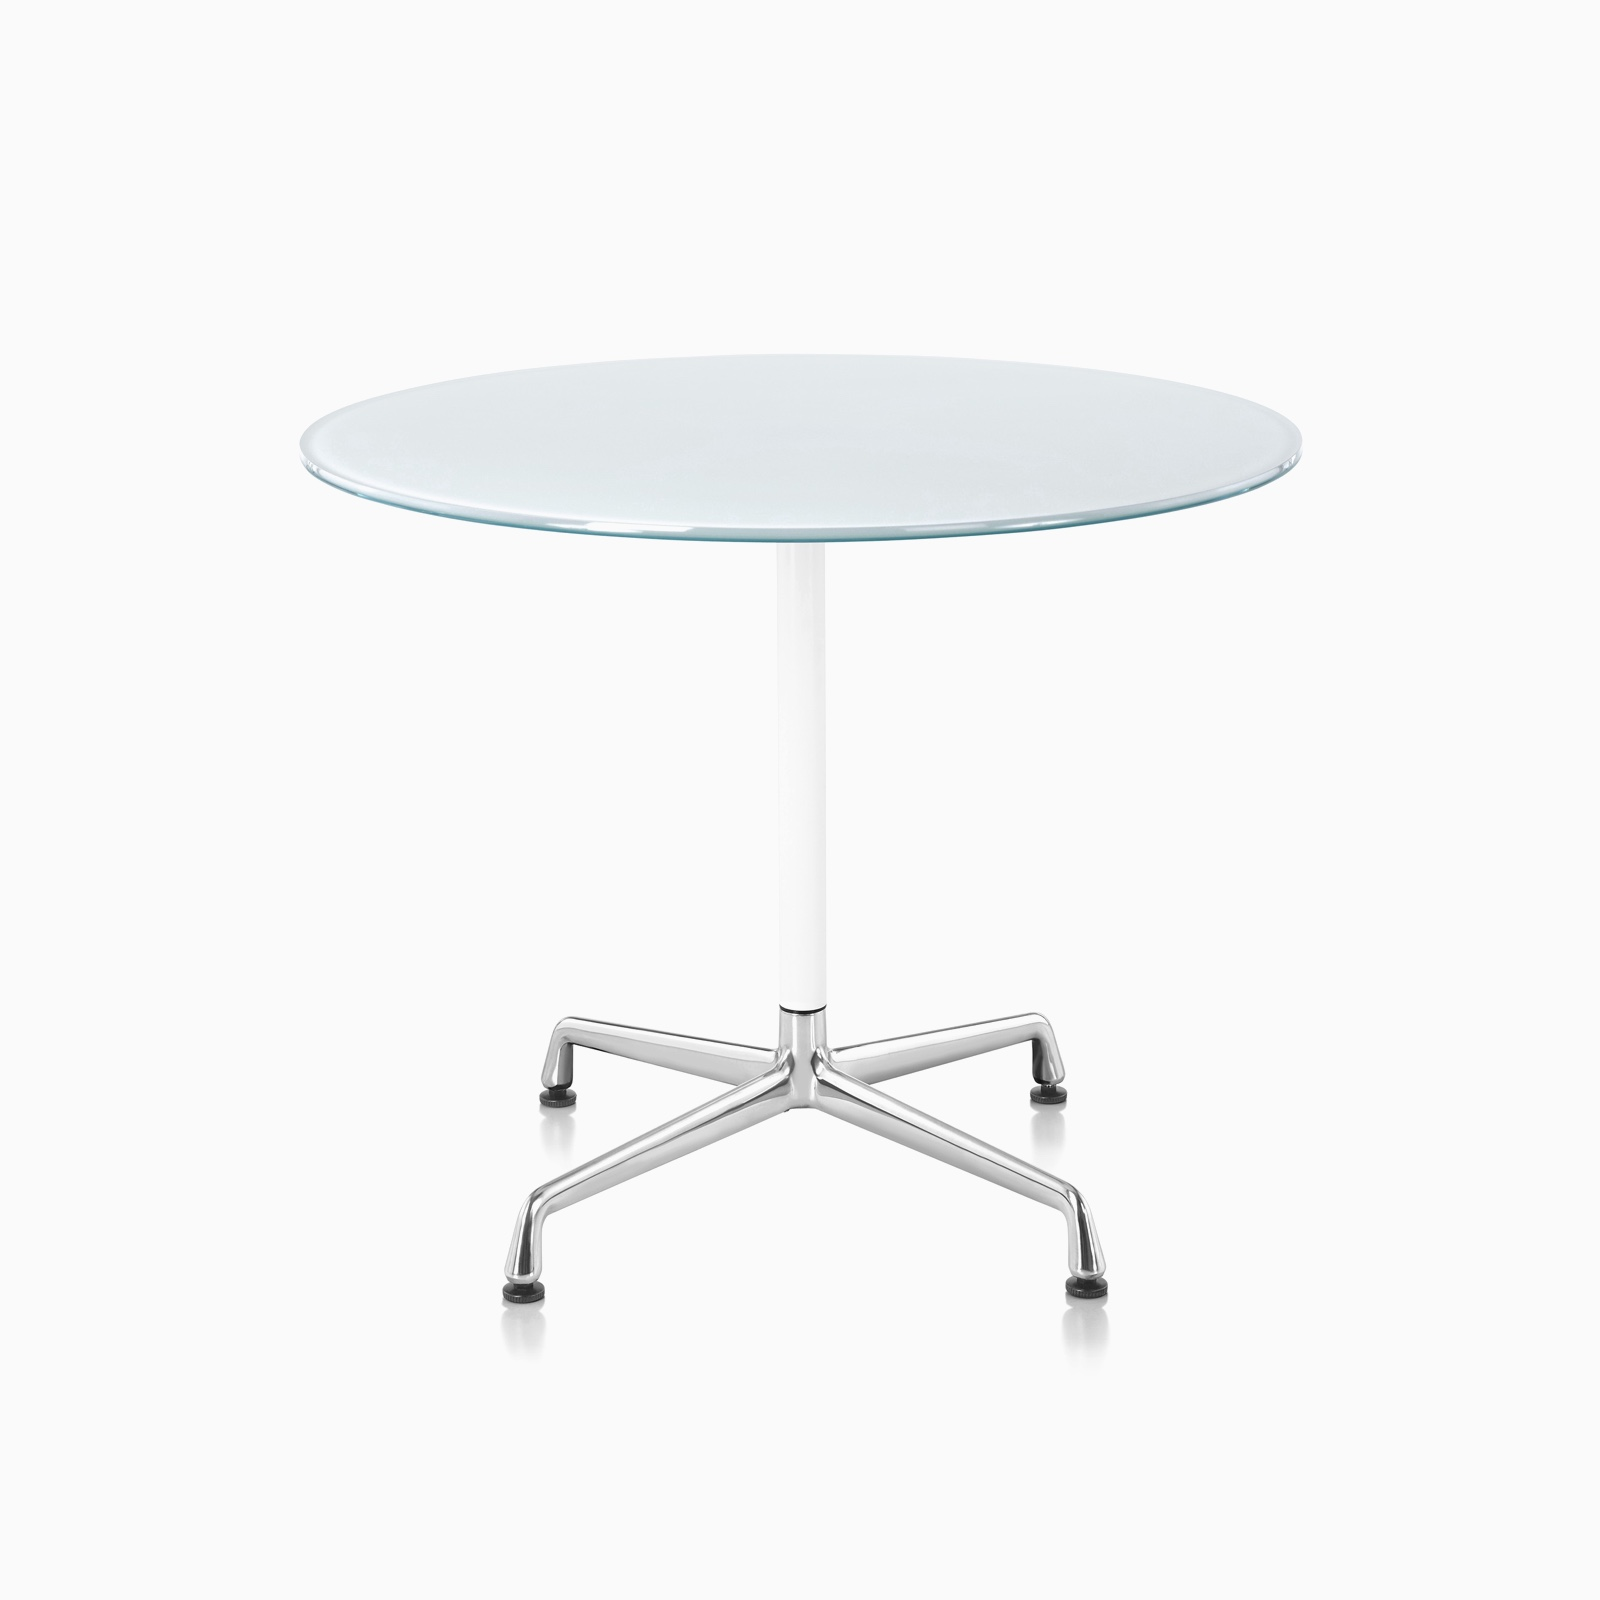 An Eames Table featuring a white back-painted glass top, white column, and polished aluminum base.